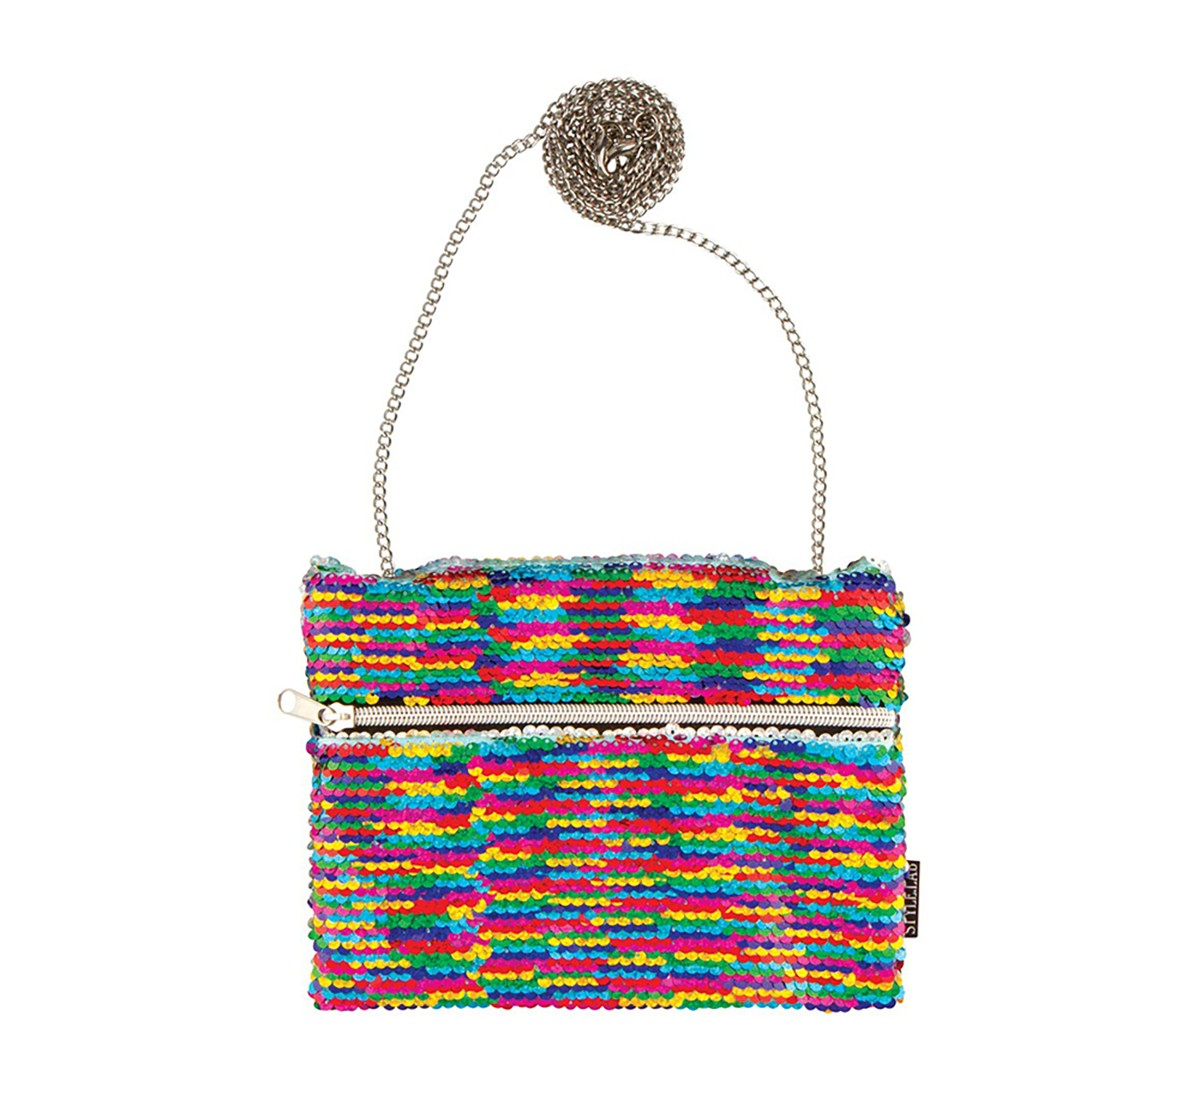 Fashion Angels Sequin Hip Bag Rainbow/Silver Travel for Girls age 6Y+